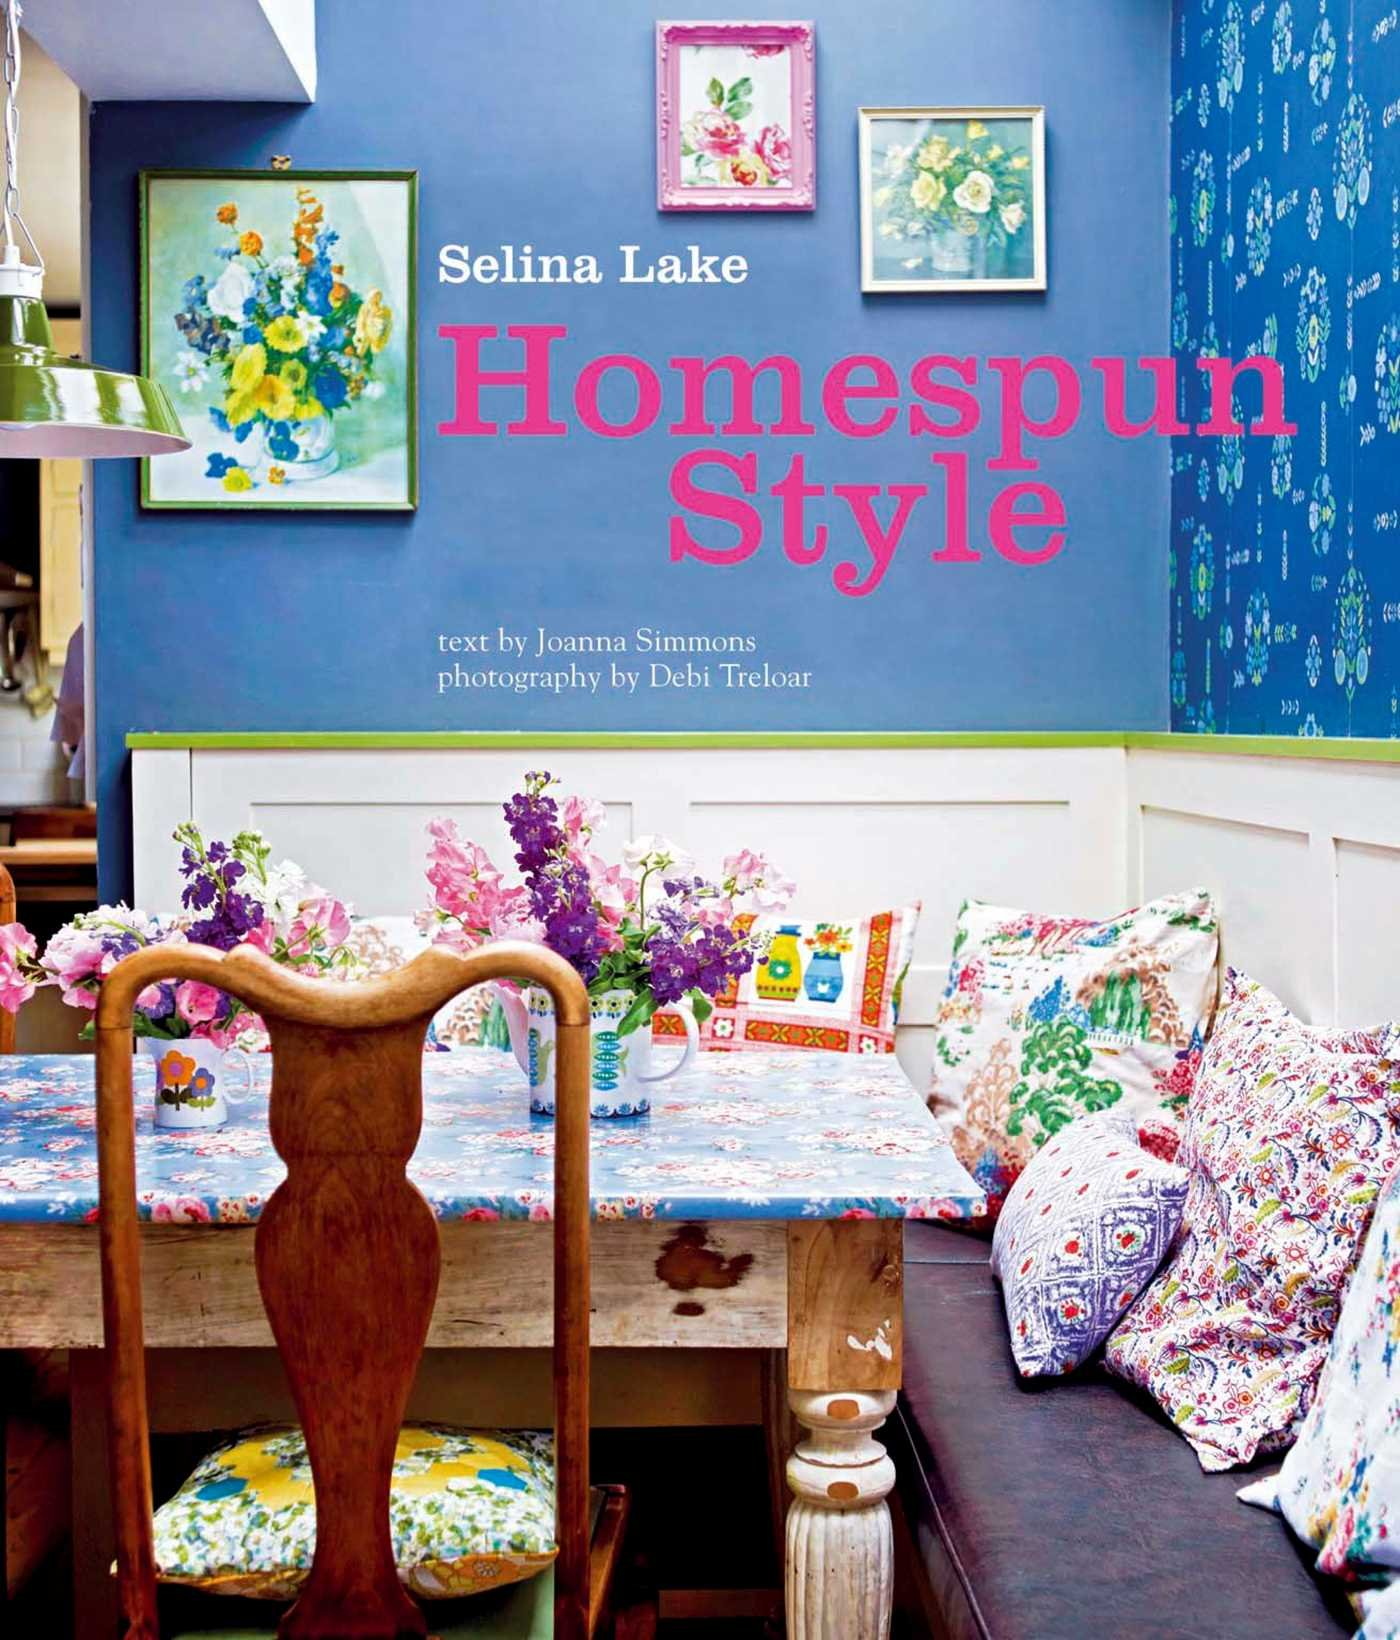 Homespun Style Amazoncouk Selina Lake Joanna Simmons 9781849752015 Books